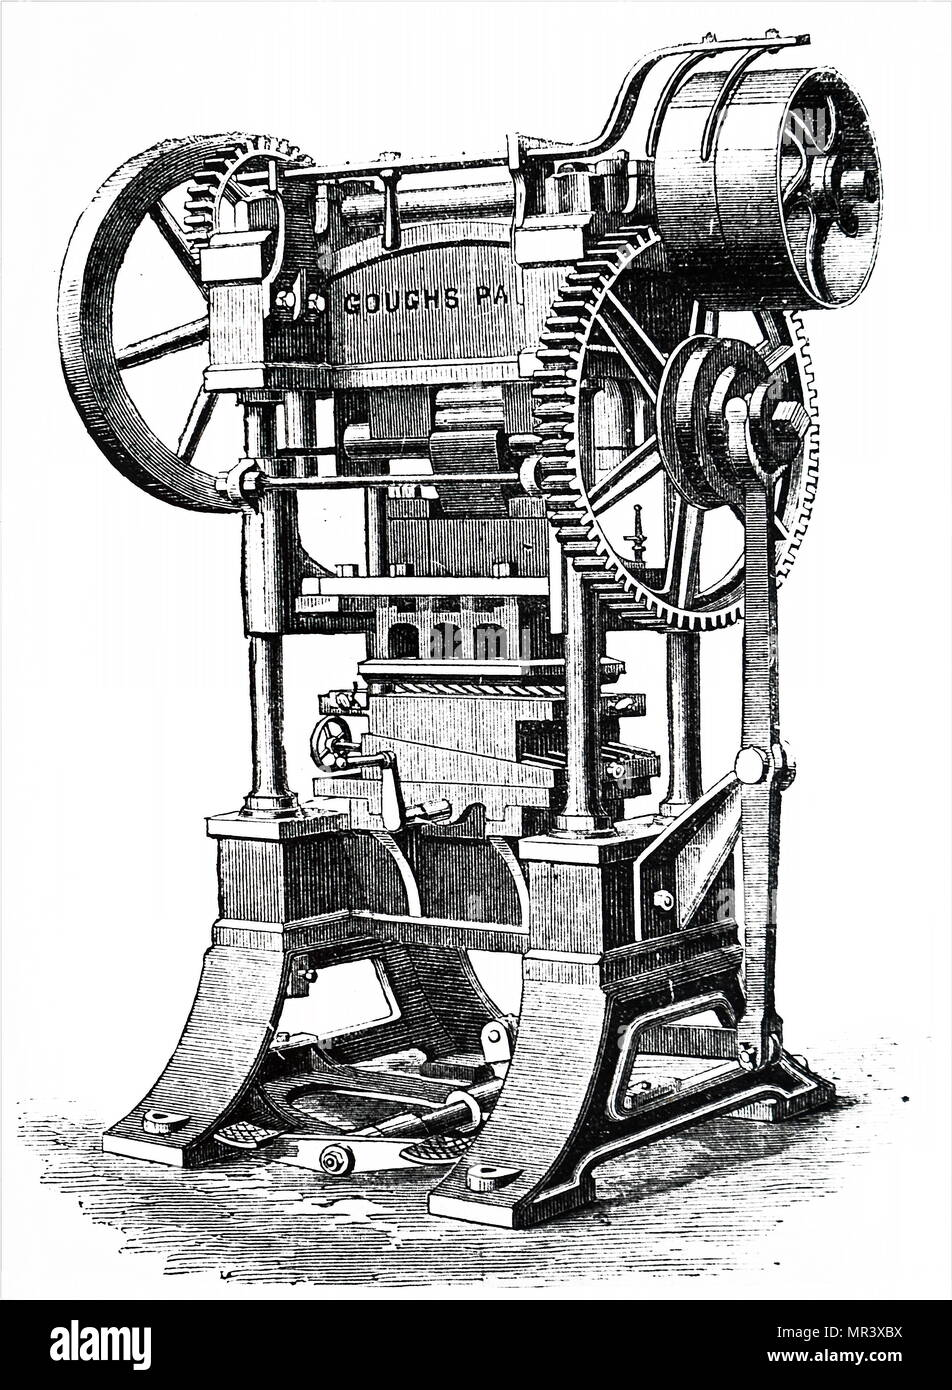 Engraving depicting a patent rotary 'arming' press for producing devices on book covers and spines for bookbinders. Dated 19th century - Stock Image